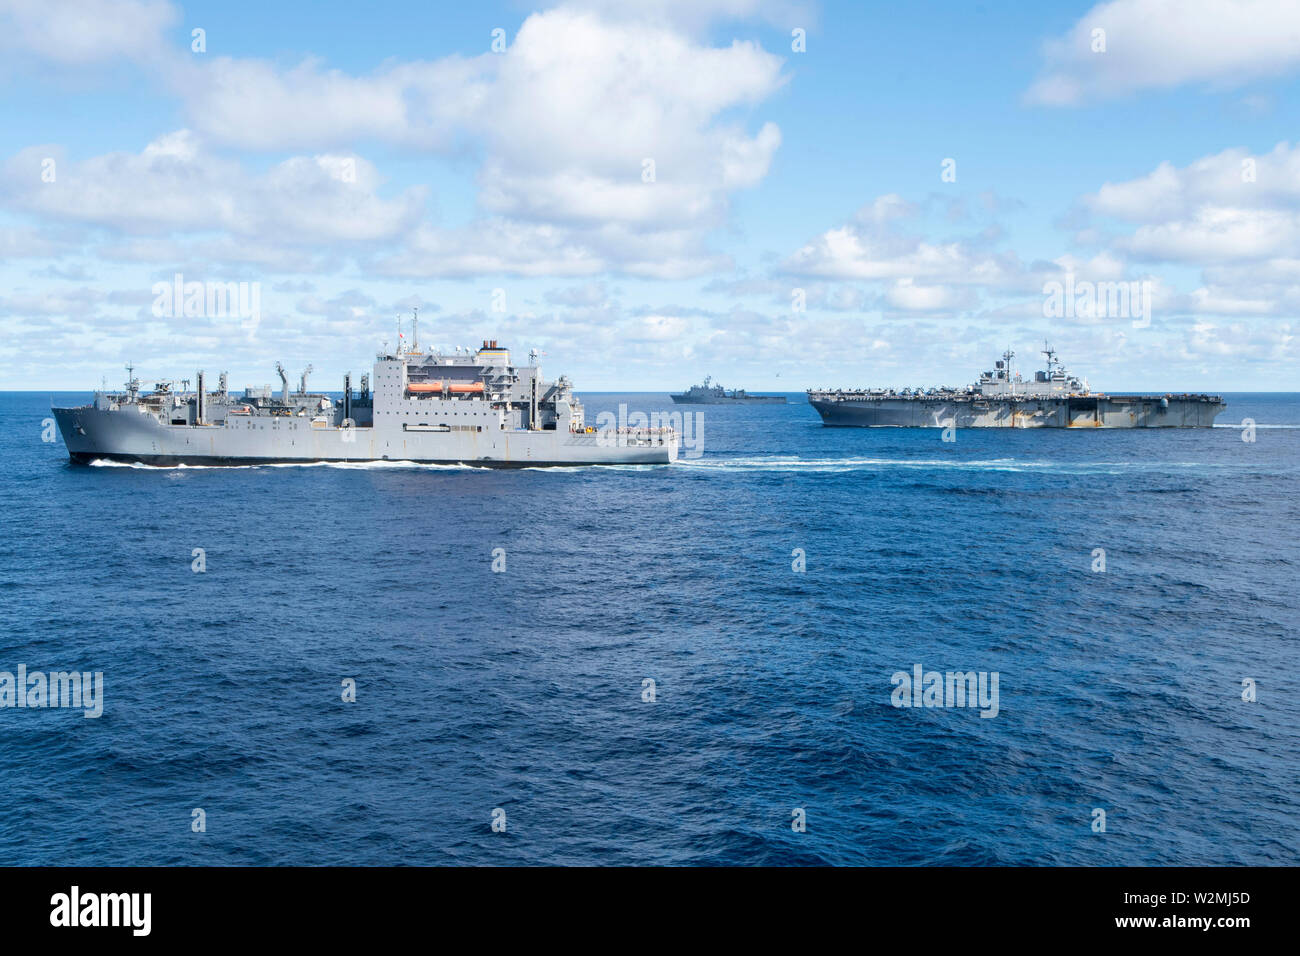 190709-N-DX072-1231 TASMAN SEA (July 9, 2019) The Military Sealift Command dry cargo and ammunition ship USNS Richard E. Byrd (T-AKE 4), the amphibious dock landing ship USS Ashland (LSD 48), and the amphibious assault ship USS Wasp (LHD 1) transit together during a replenishment-at-sea. Wasp, flagship, and Ashland, part of the of the Wasp Amphibious Ready Group, with embarked 31st Marine Expeditionary Unit, is currently participating in Talisman Sabre 2019 off the coast of Northern Australia.  A bilateral, biennial event, Talisman Sabre is designed to improve U.S. and Australian combat traini - Stock Image